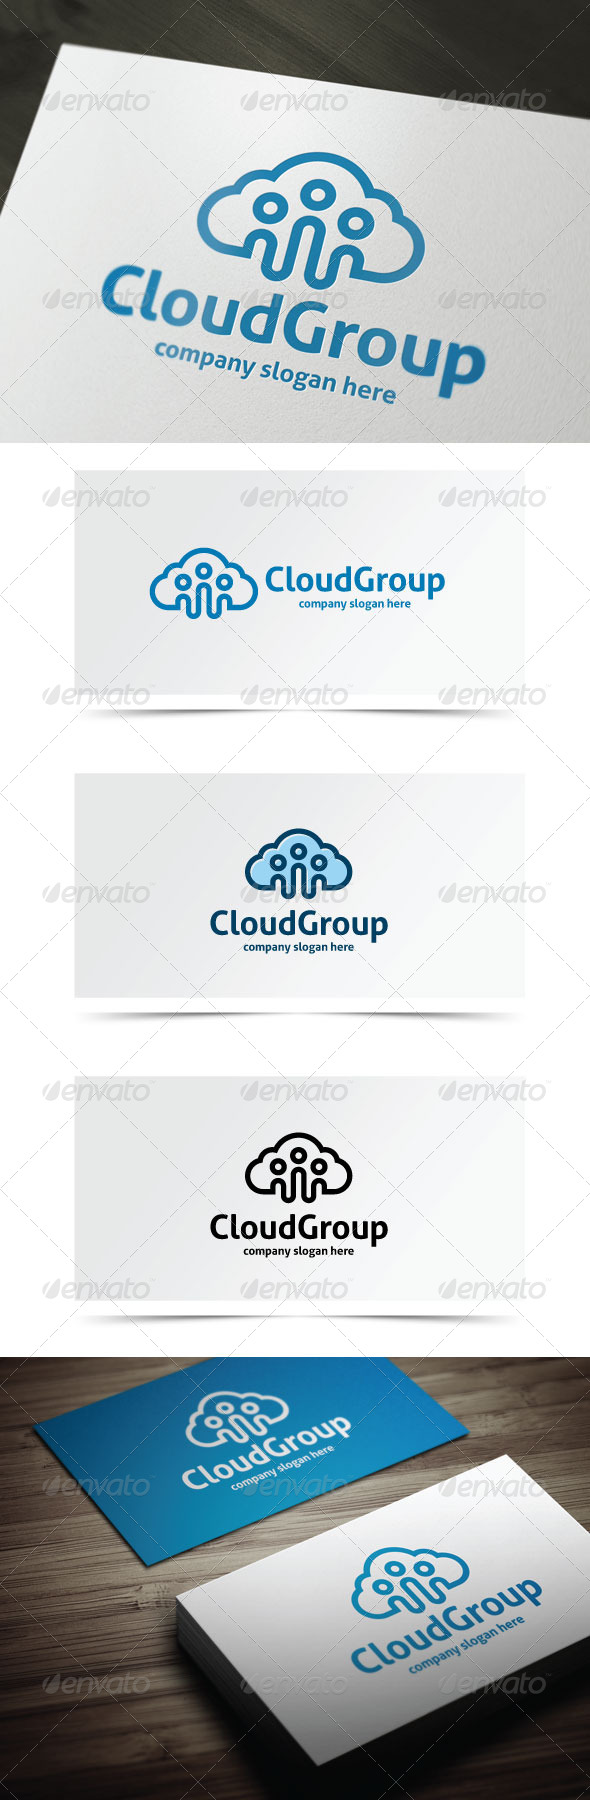 Cloud-Group_preview